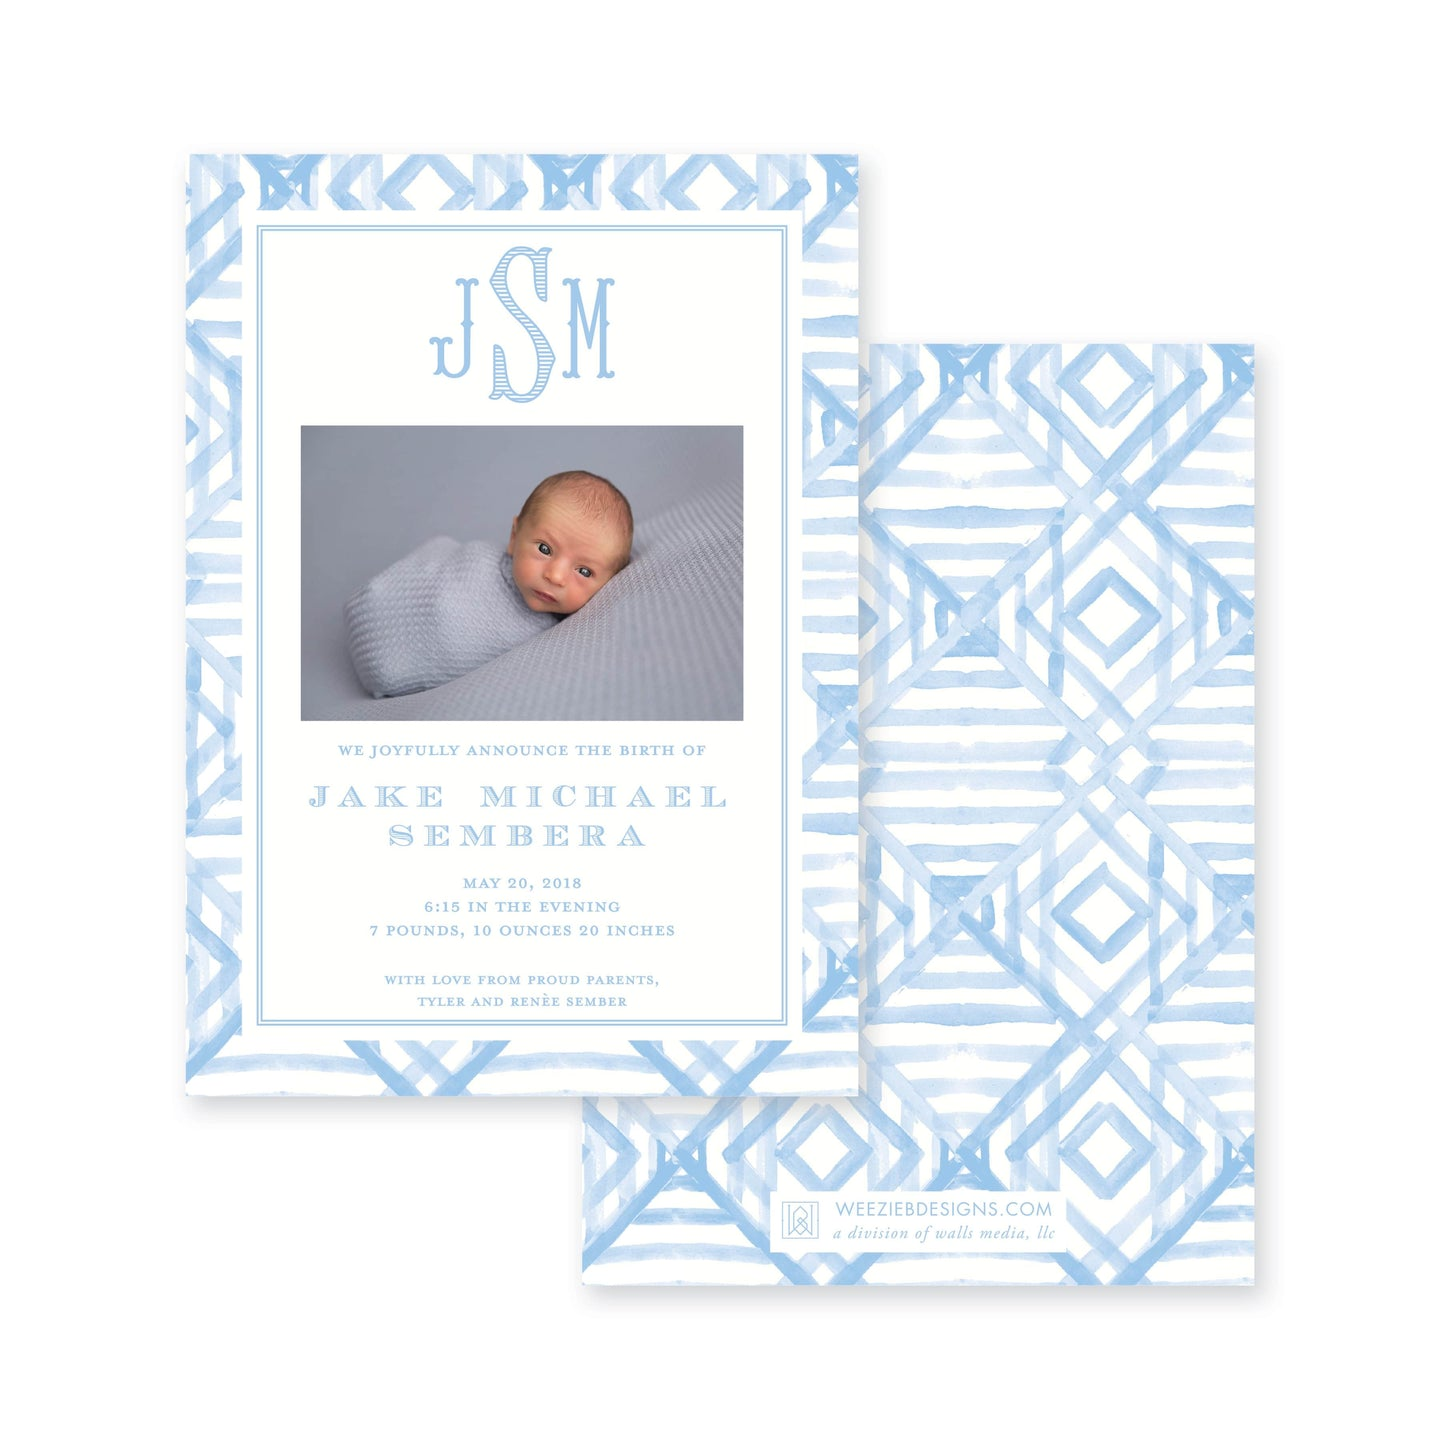 Weezie B. Designs | Watercolor Bamboo Birth Announcement